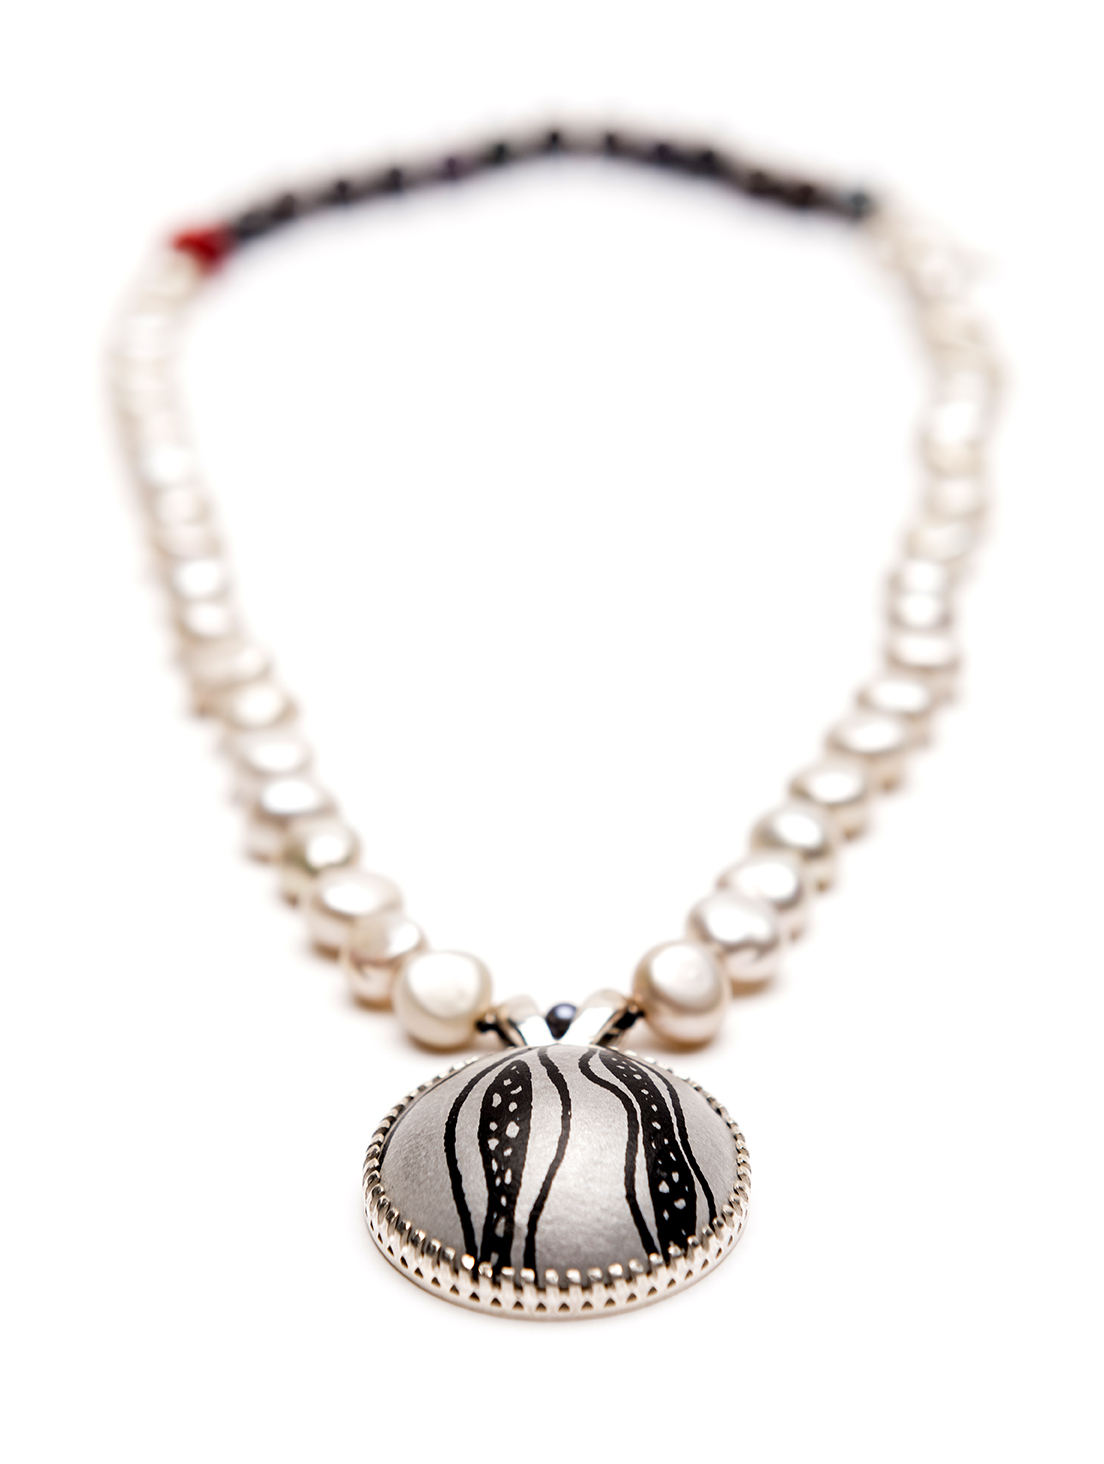 Lorraine-Gibby-jewellery-necklace-aluminium-black-white-pearls-coral-silver.jpg